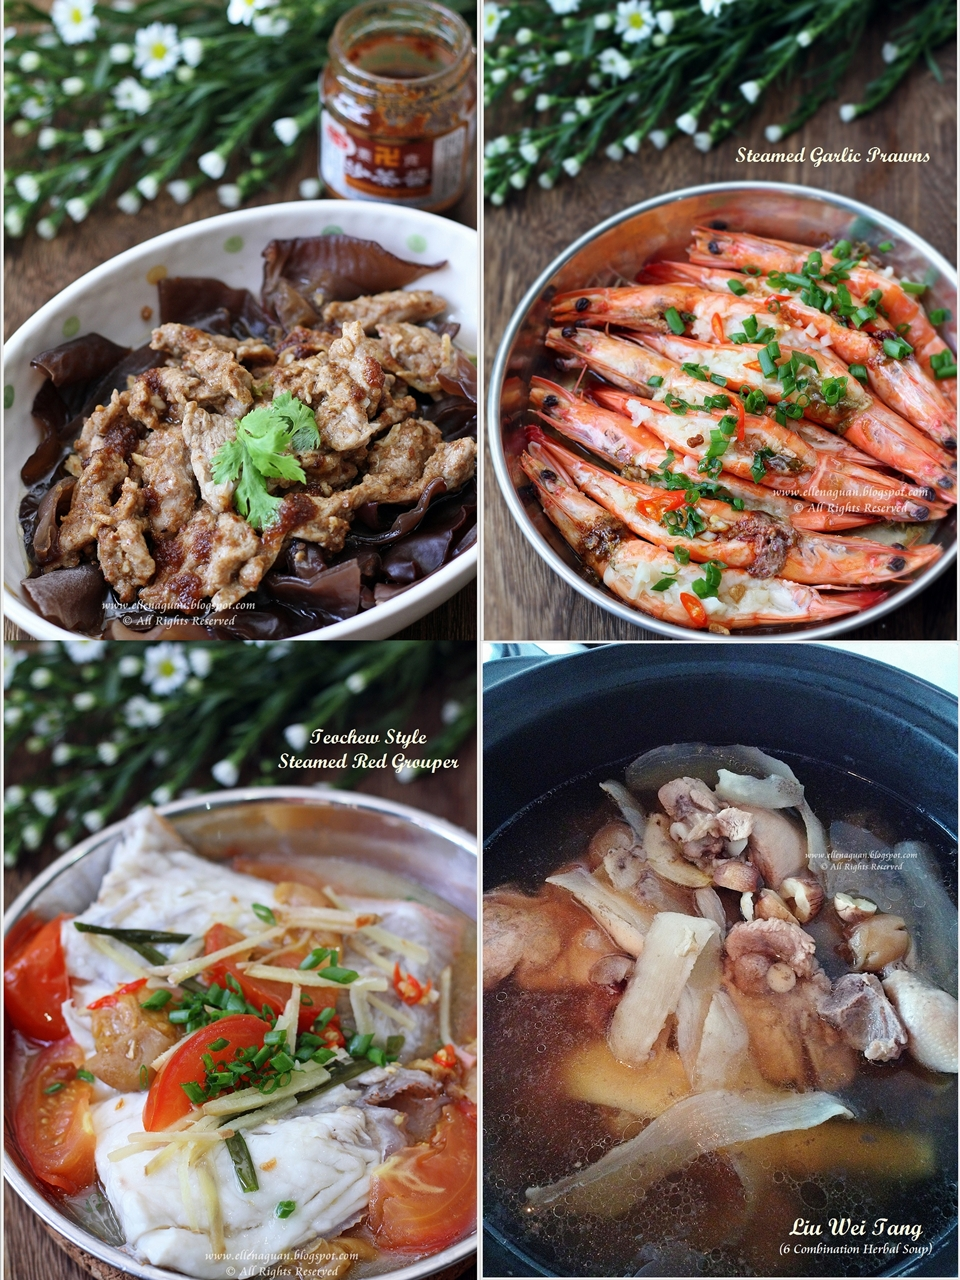 Cuisine paradise singapore food blog recipes reviews and travel quick recipes on 3 dishes 1 soup forumfinder Gallery